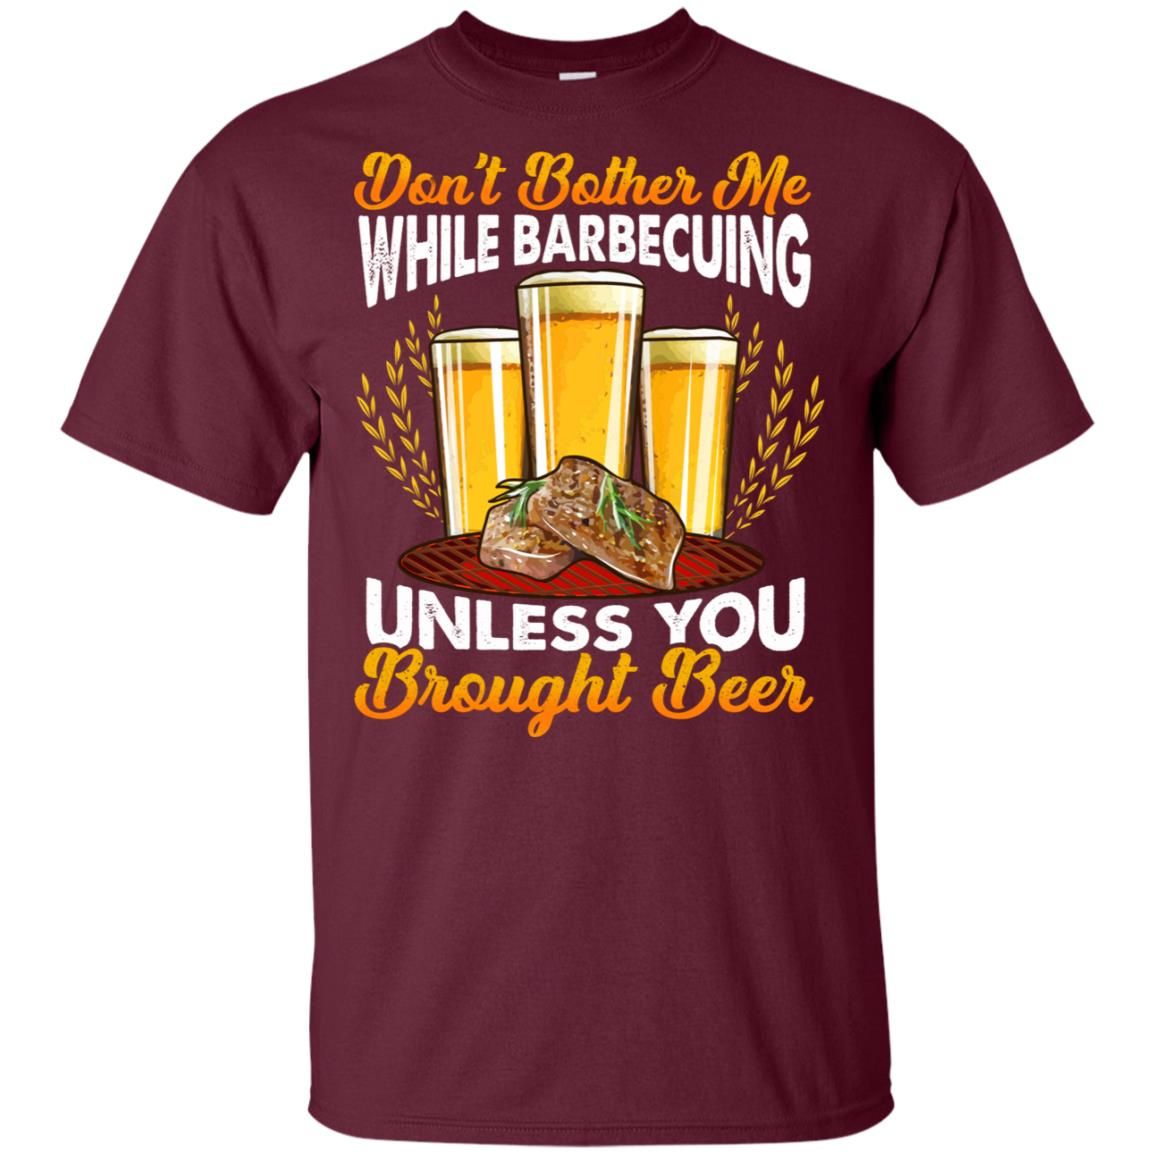 Don't Bother Me While Barbecuing Funny Bbq Unisex Short Sleeve